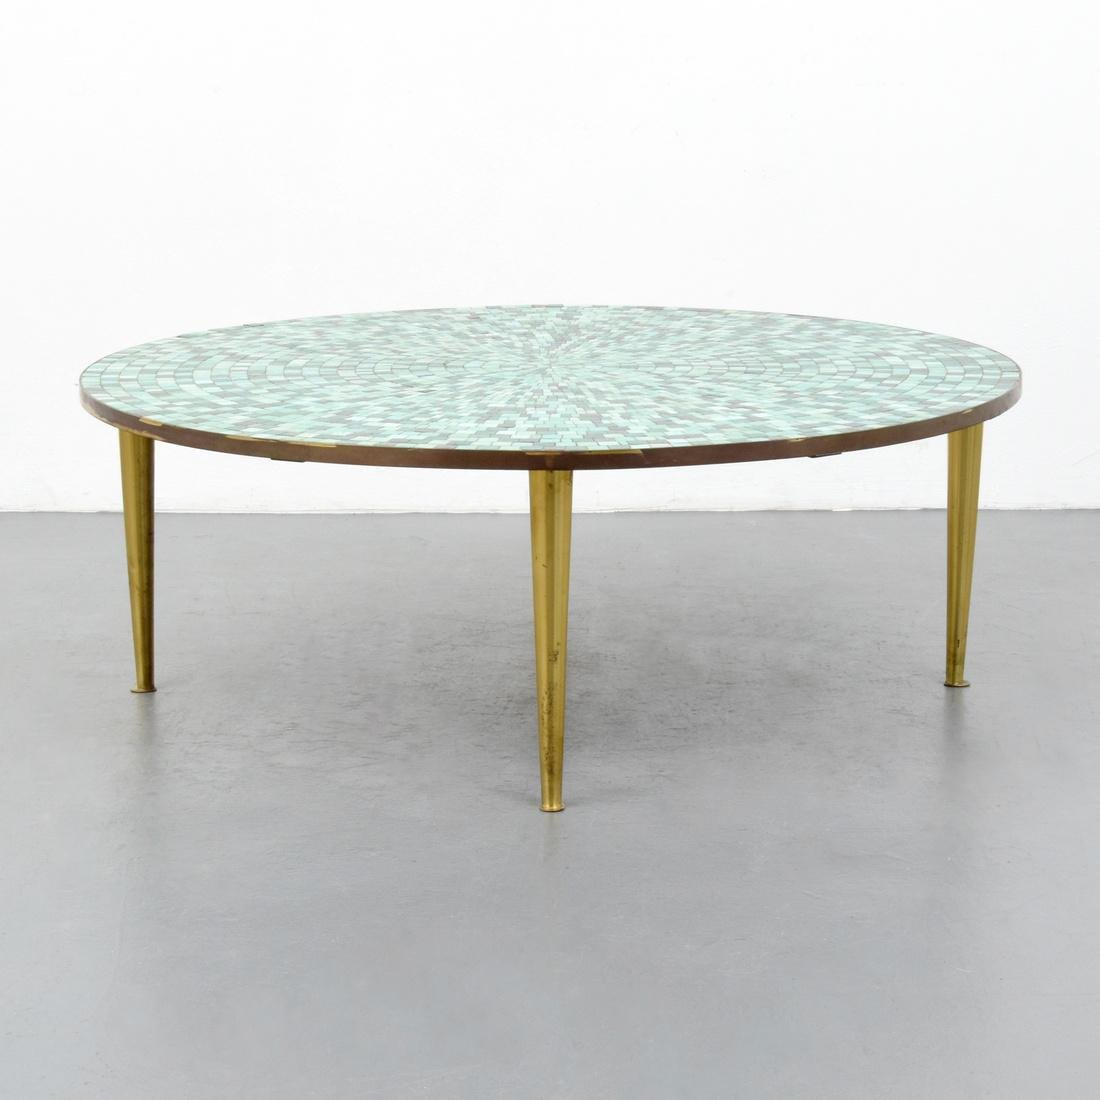 Large Coffee Table, Manner of Edward Wormley